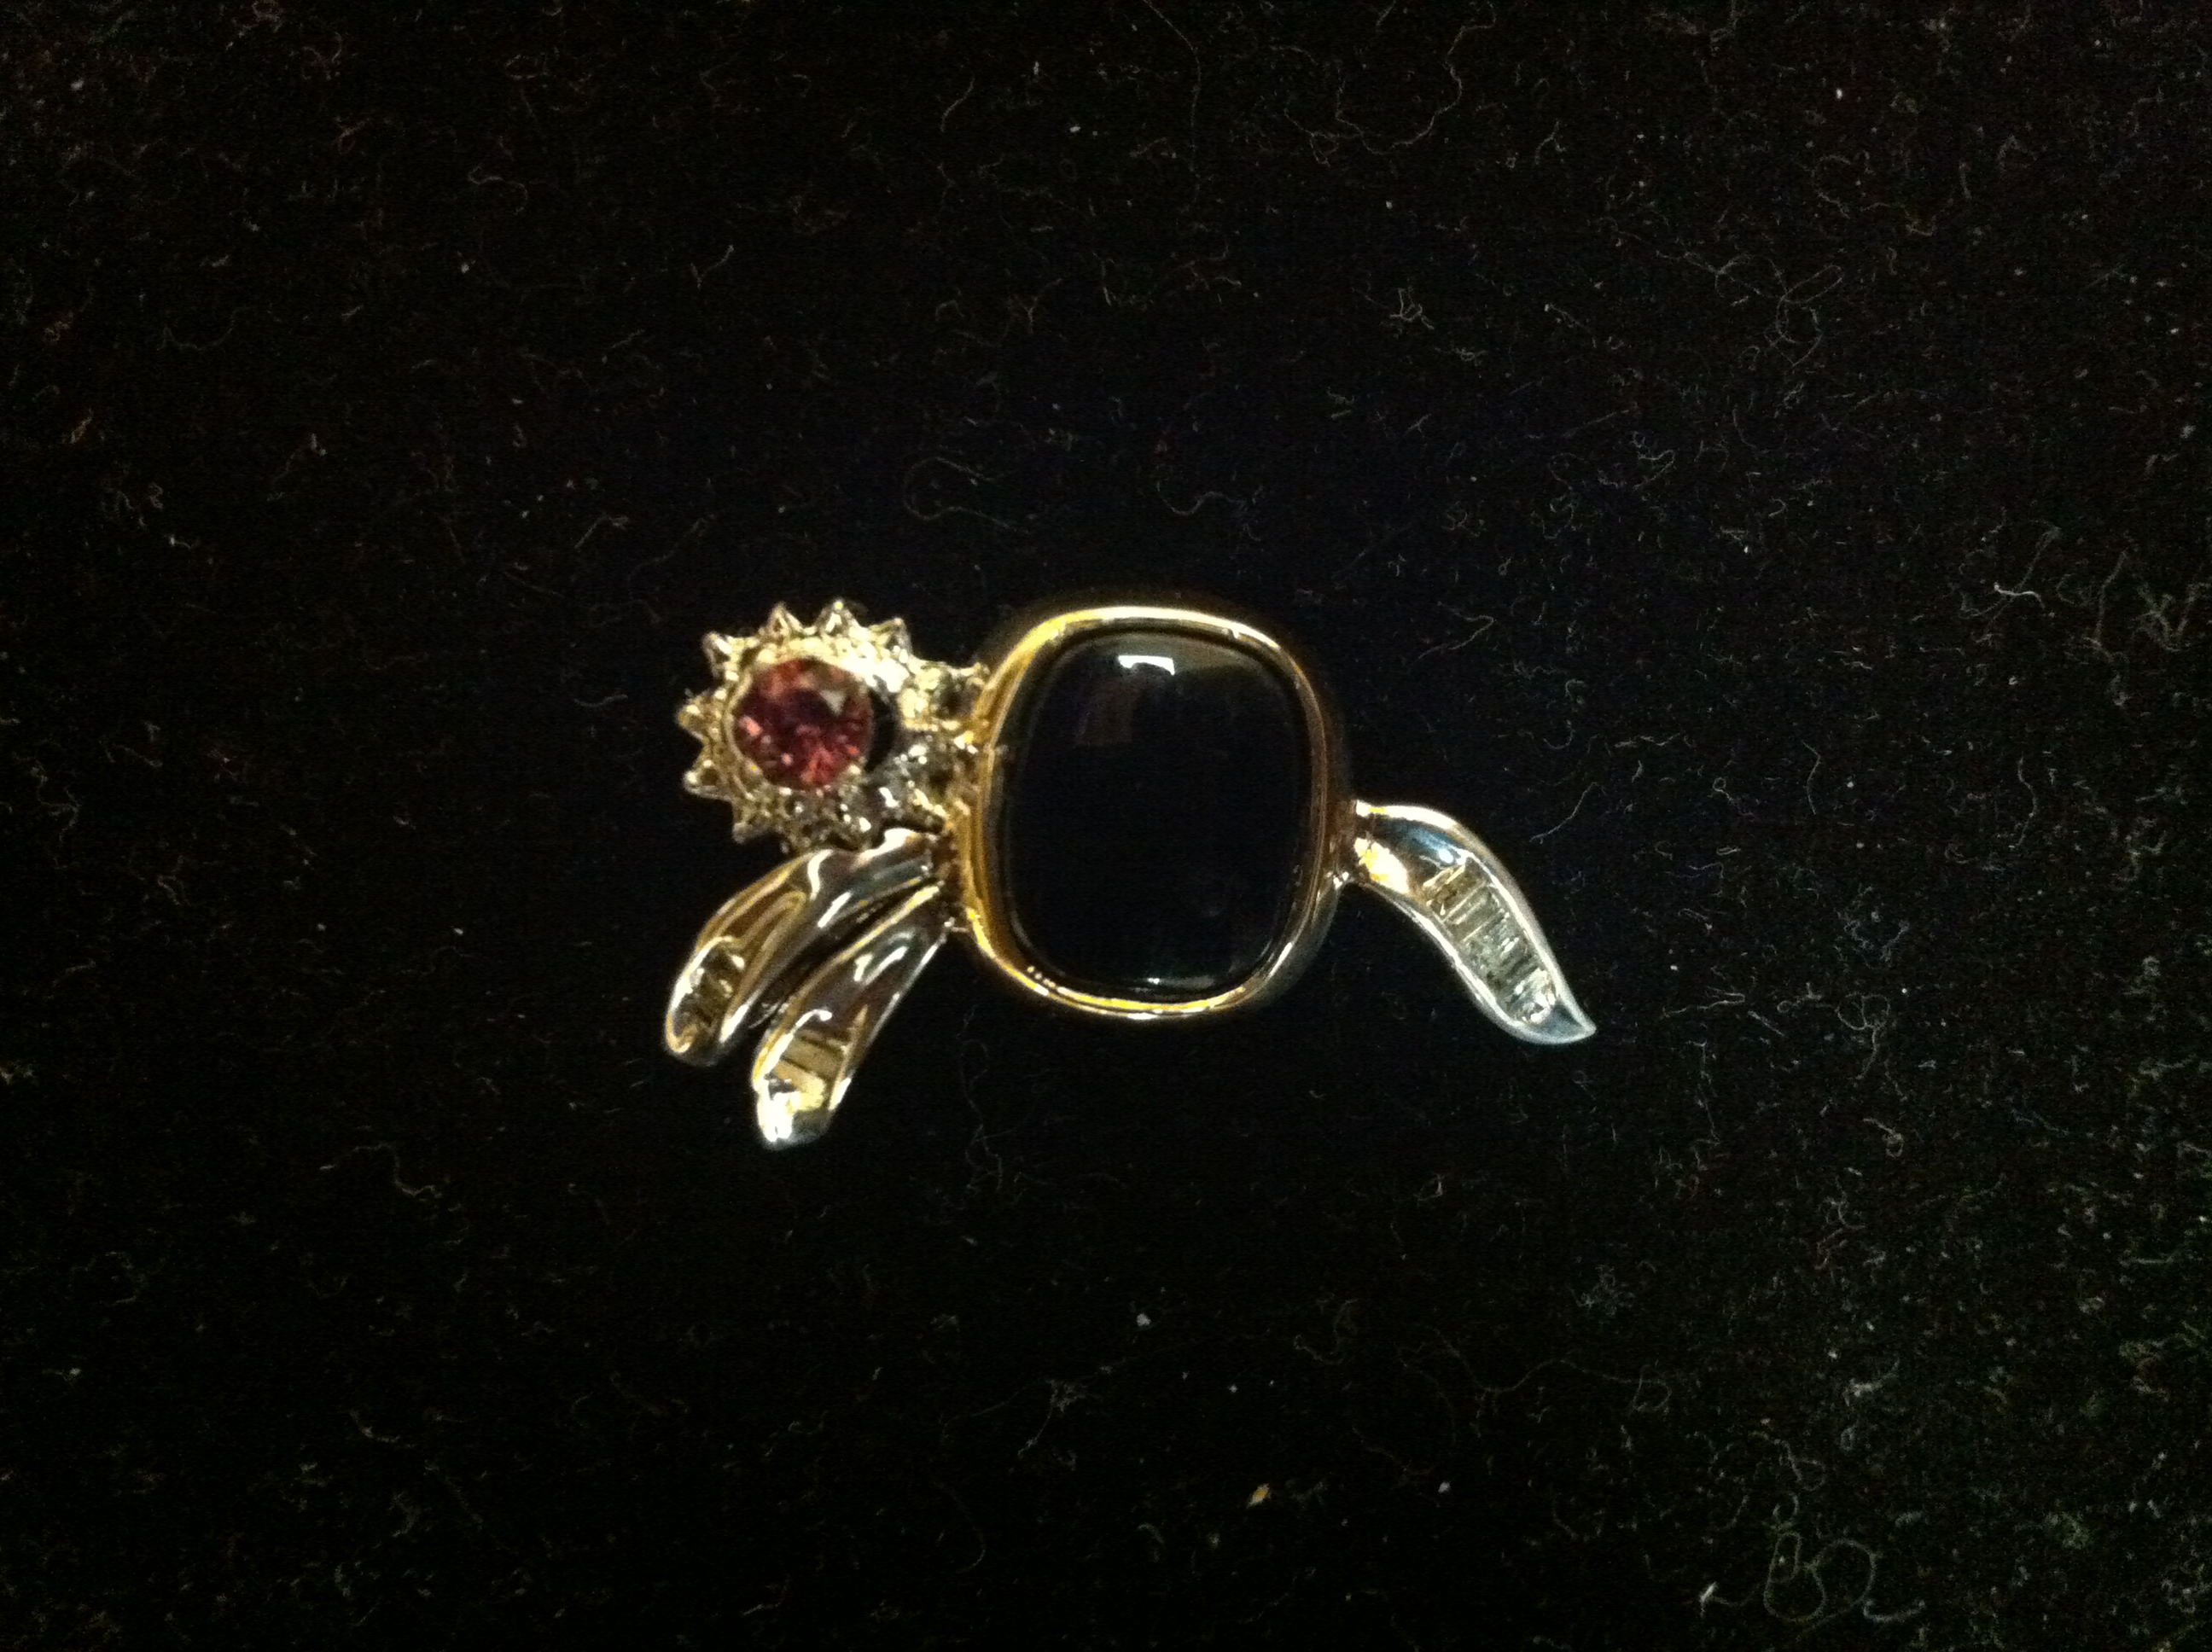 A gold pin with a black stone and a red stone